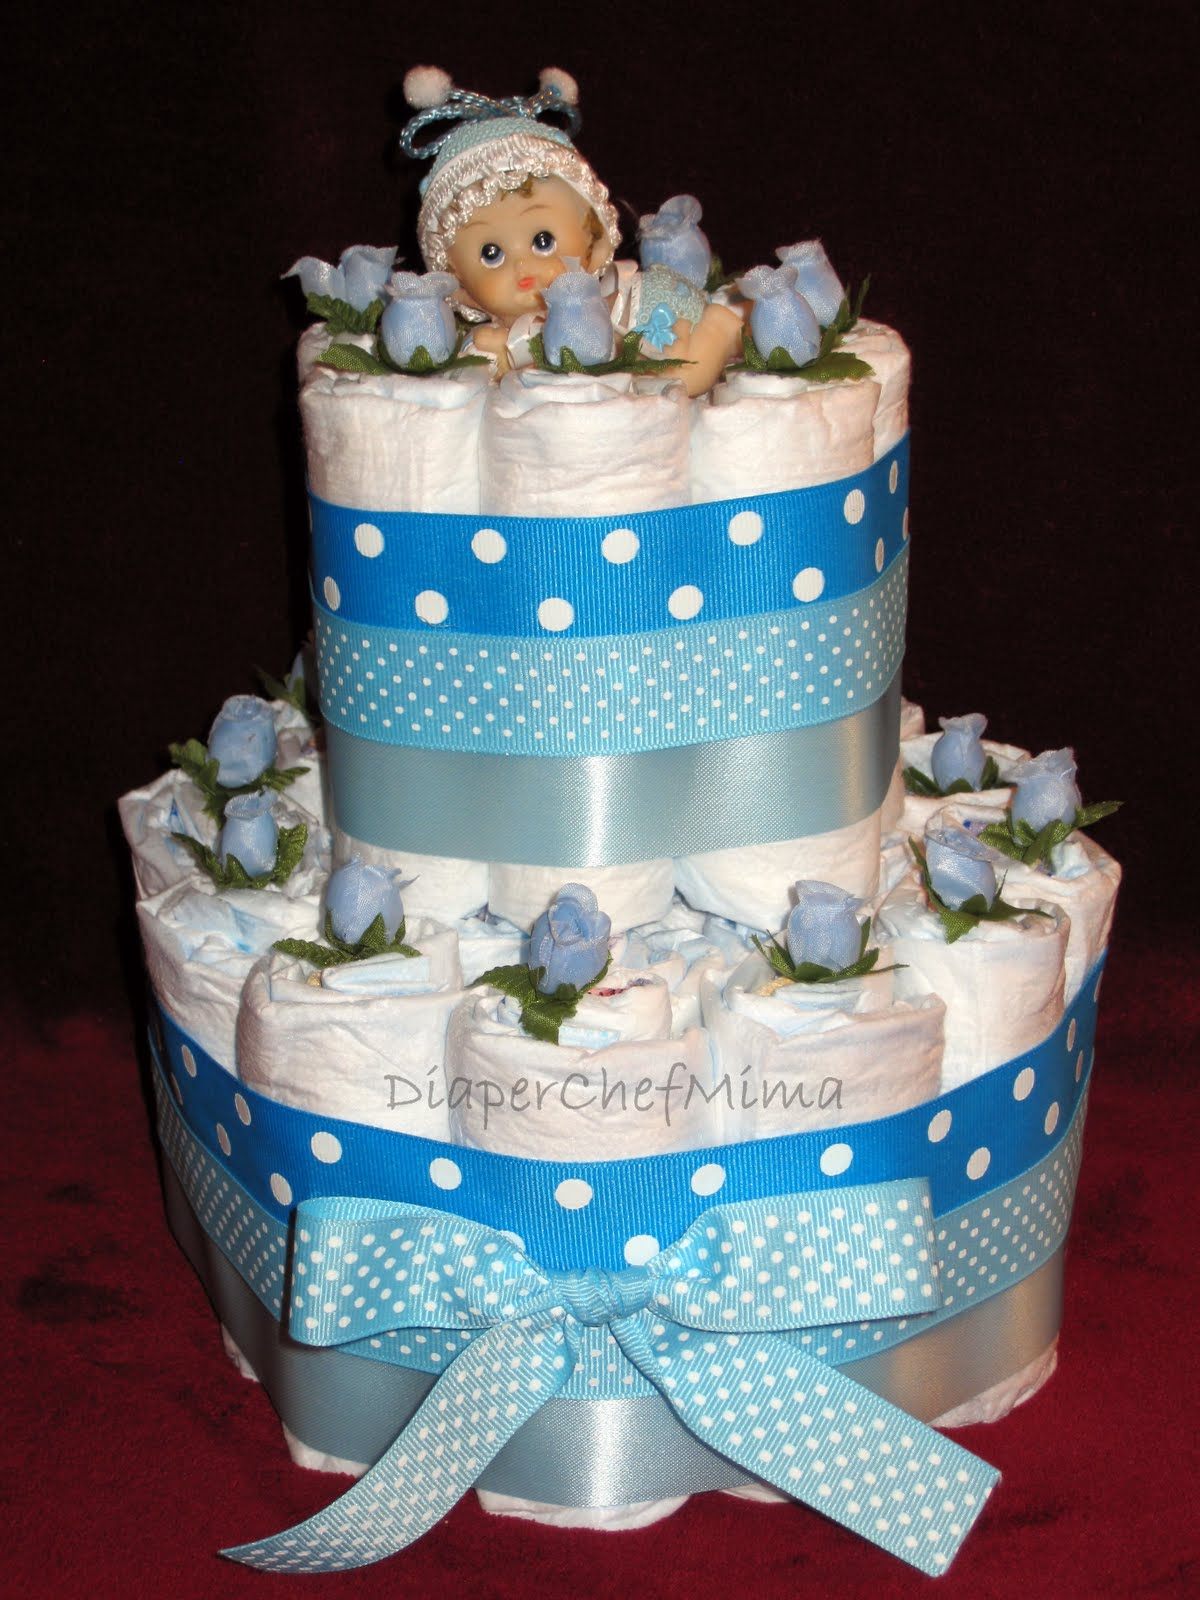 Diaper Cake Centerpiece For Baby Shower : Baby Shower Cakes: Baby Shower Diaper Cake Centerpiece Ideas